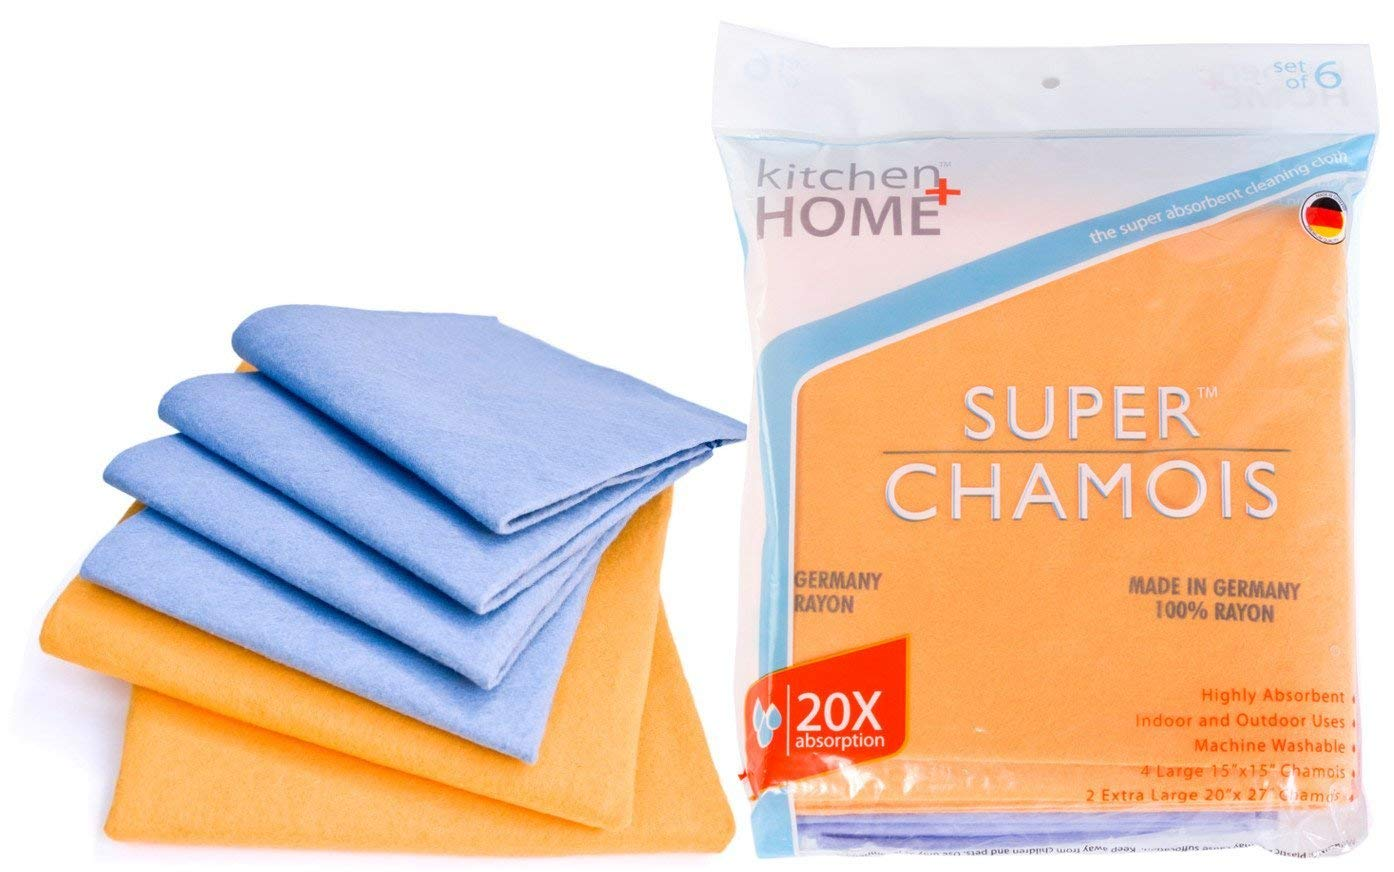 Super Chamois - Super Absorbent Shammy Cleaning Cloth Value 6 Pack - Holds 20x It's Weight In Liquid Kitchen + Home SC-121B